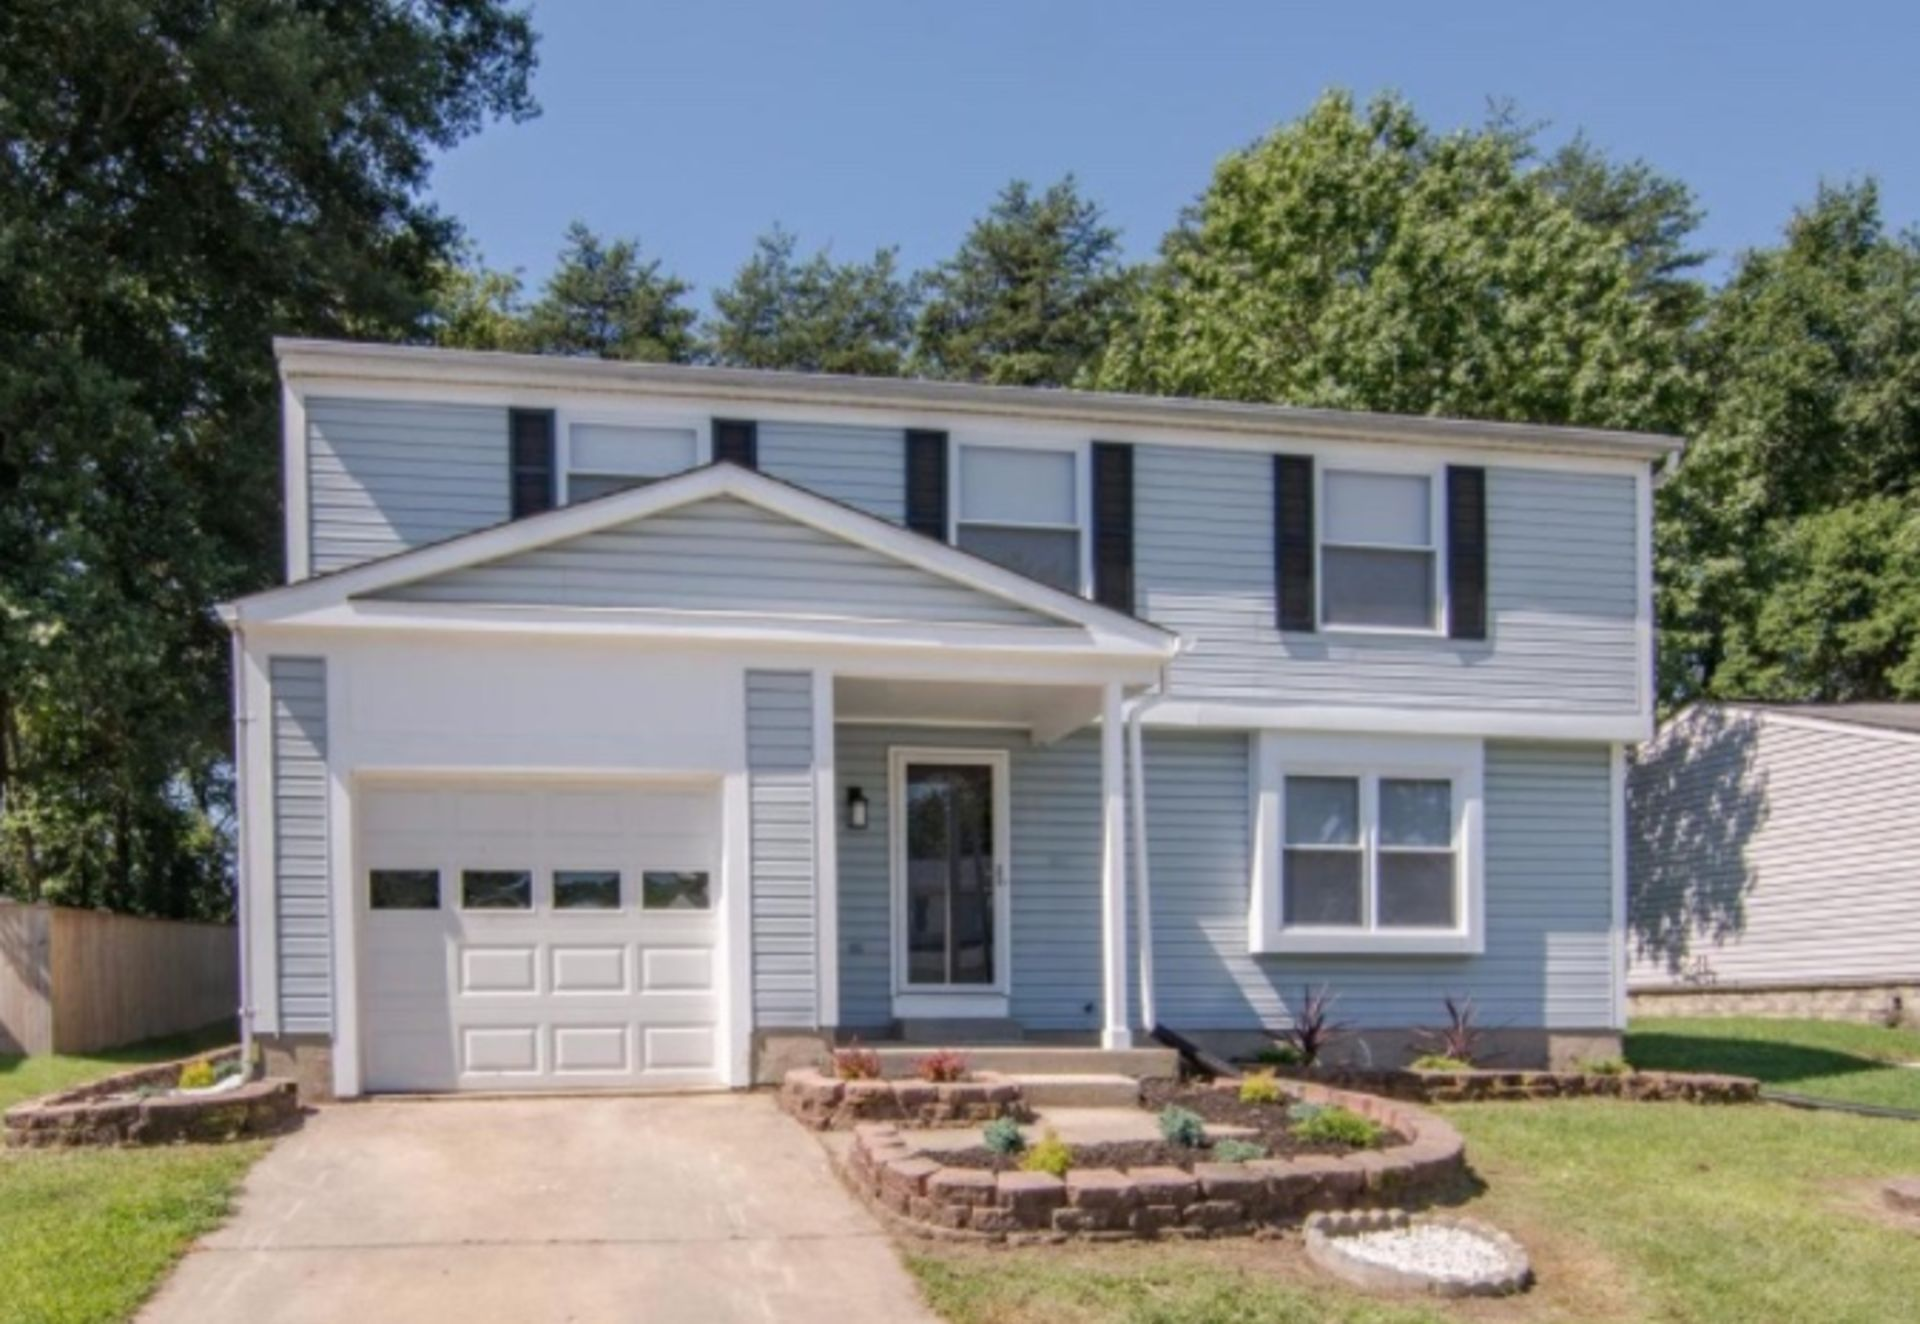 7728 Leaside Ct. Hanover, MD – JUST SOLD